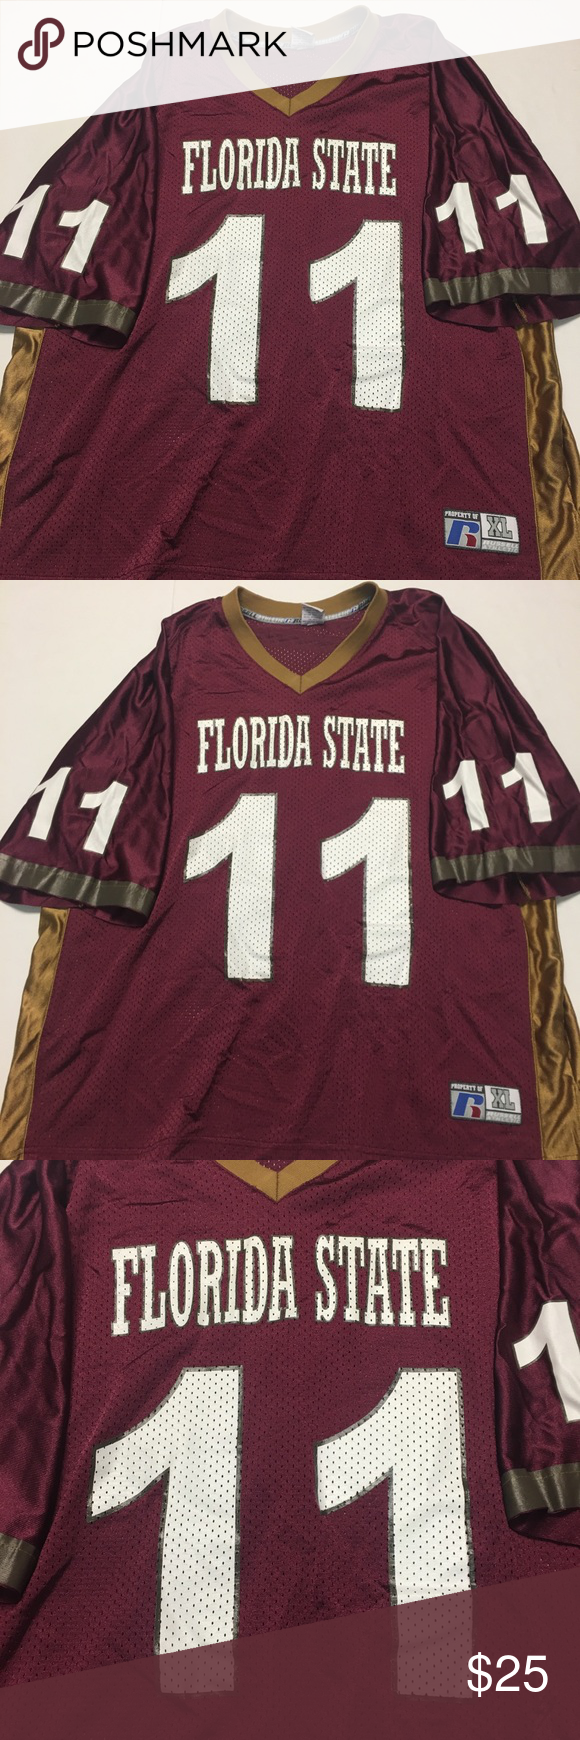 17eb449dc Florida State  11 Russell Athletic Jersey XL Florida State  11 Russell  Athletic Jersey XL There is no player name on the jersey No rips